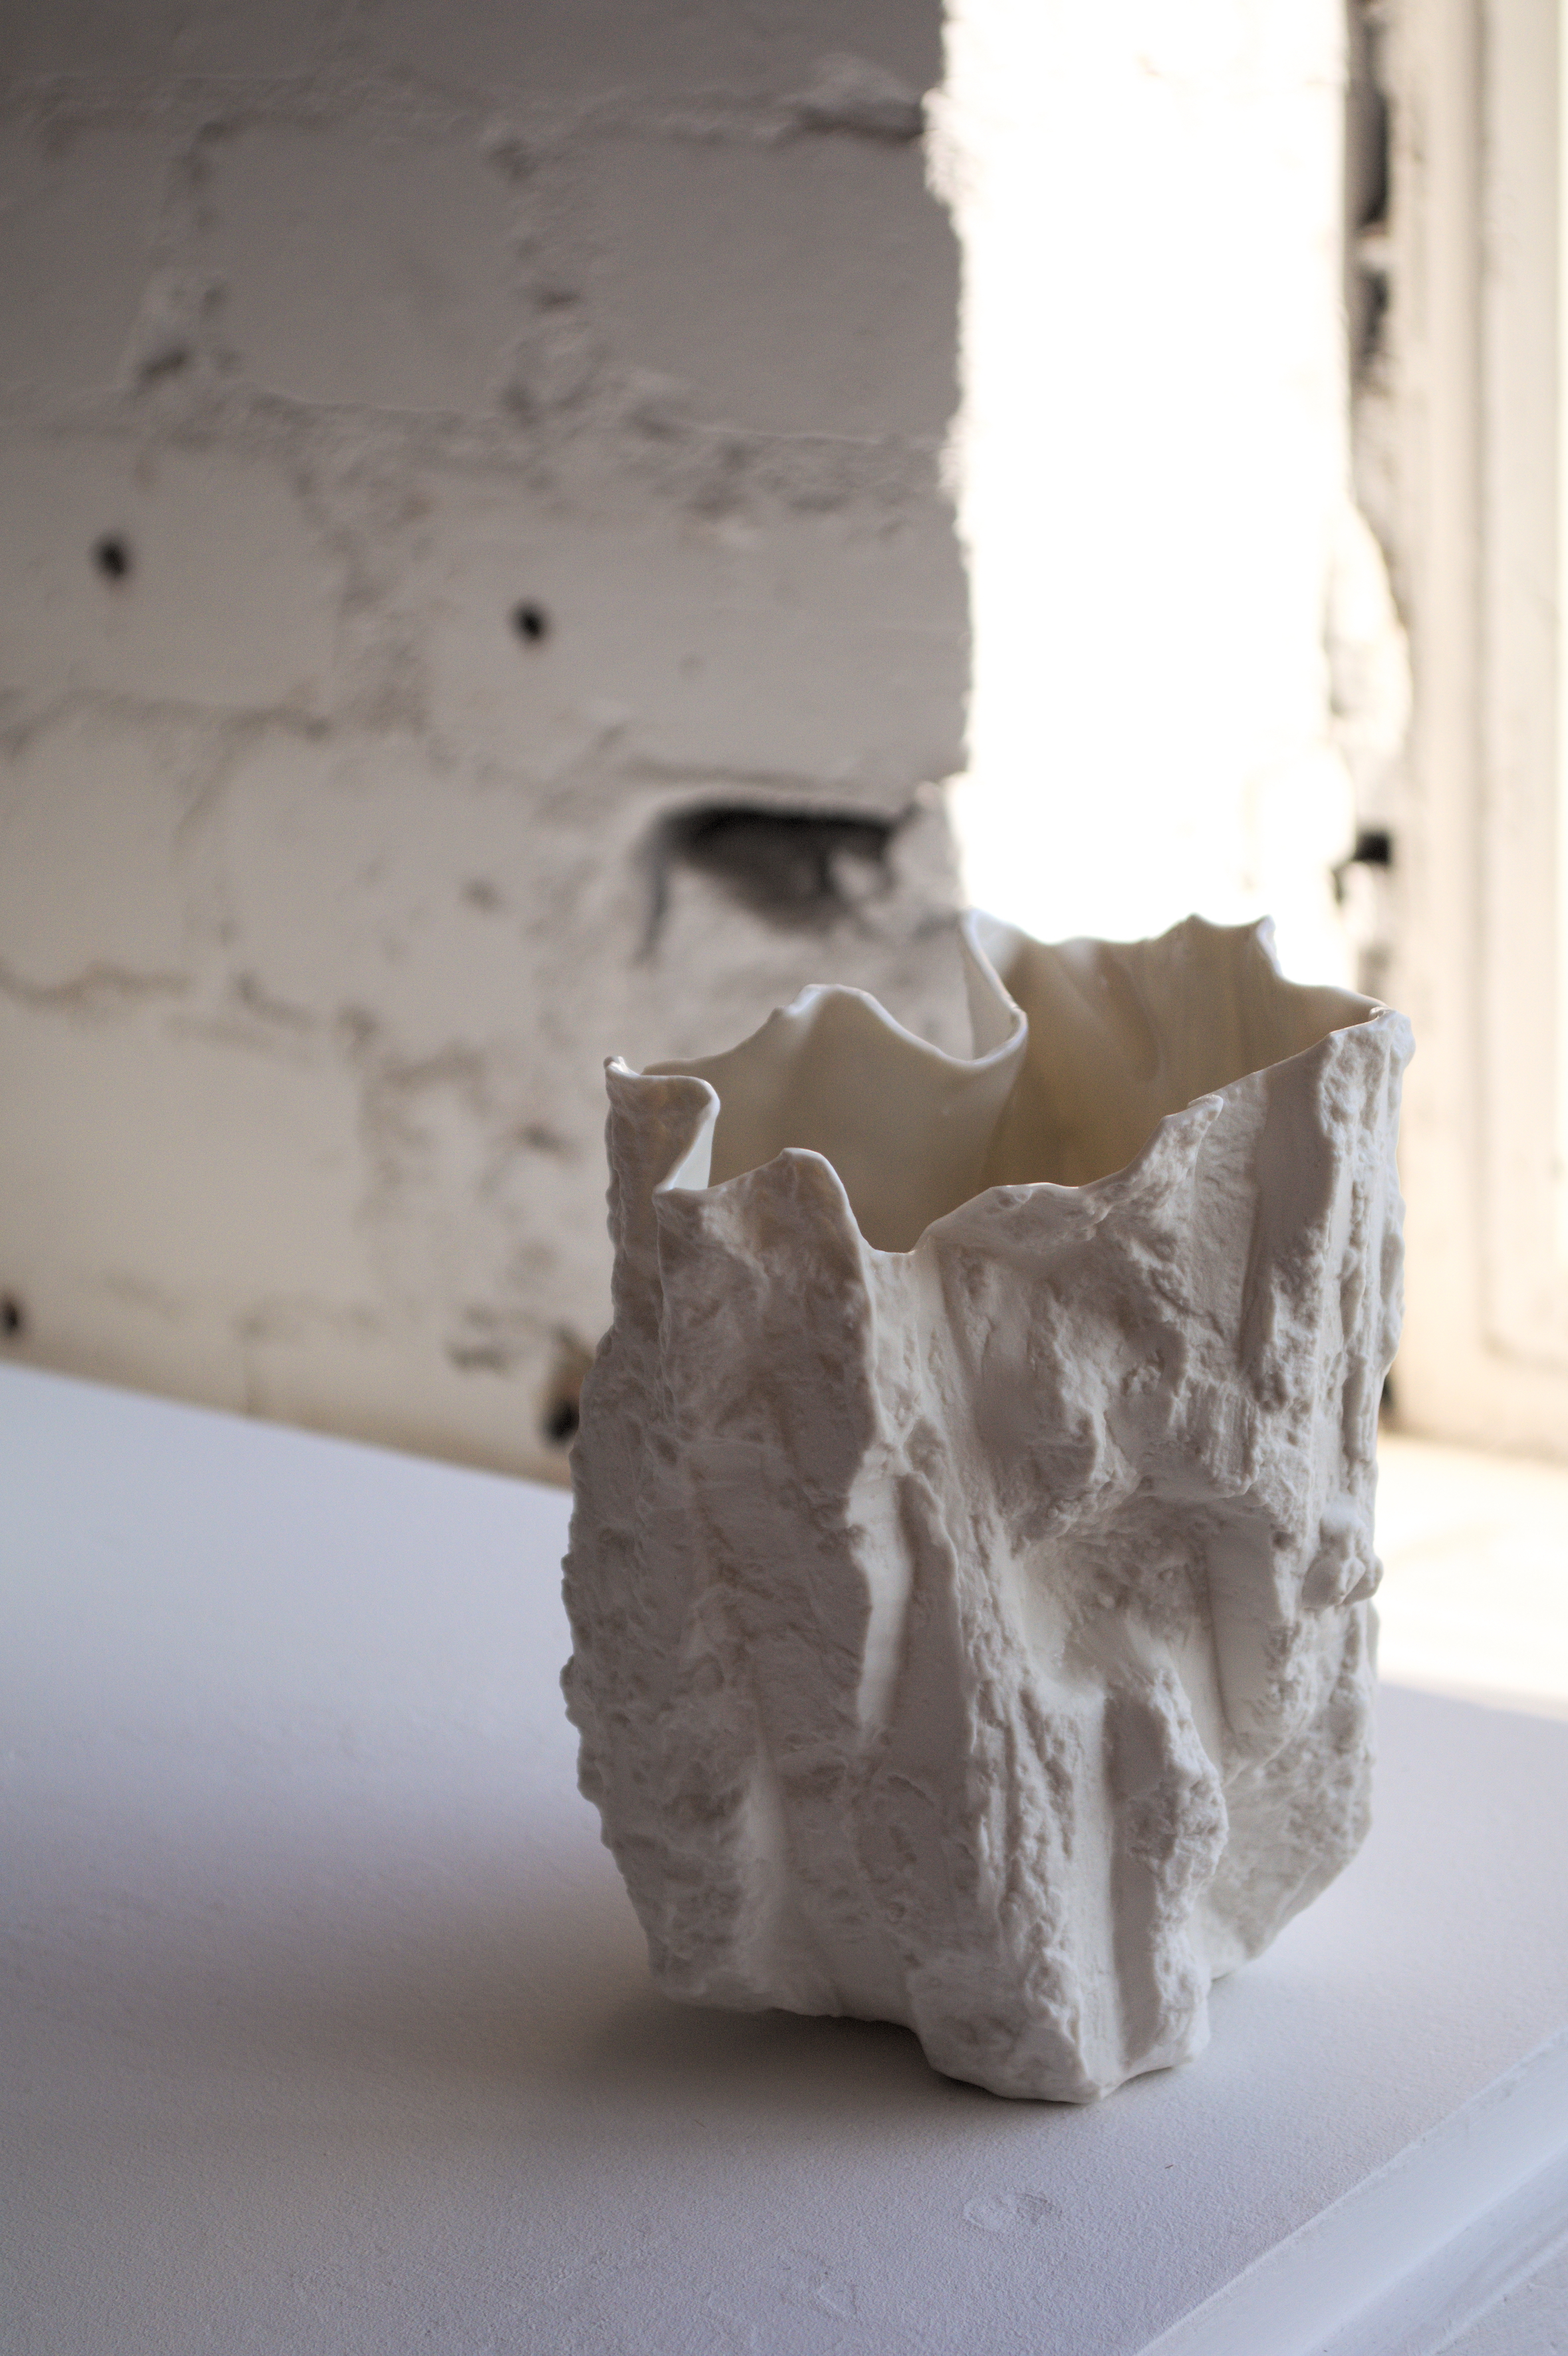 Cut no. 6, 2019. 14.5x12x10cm.   Slip cast porcelain, edition of 15.